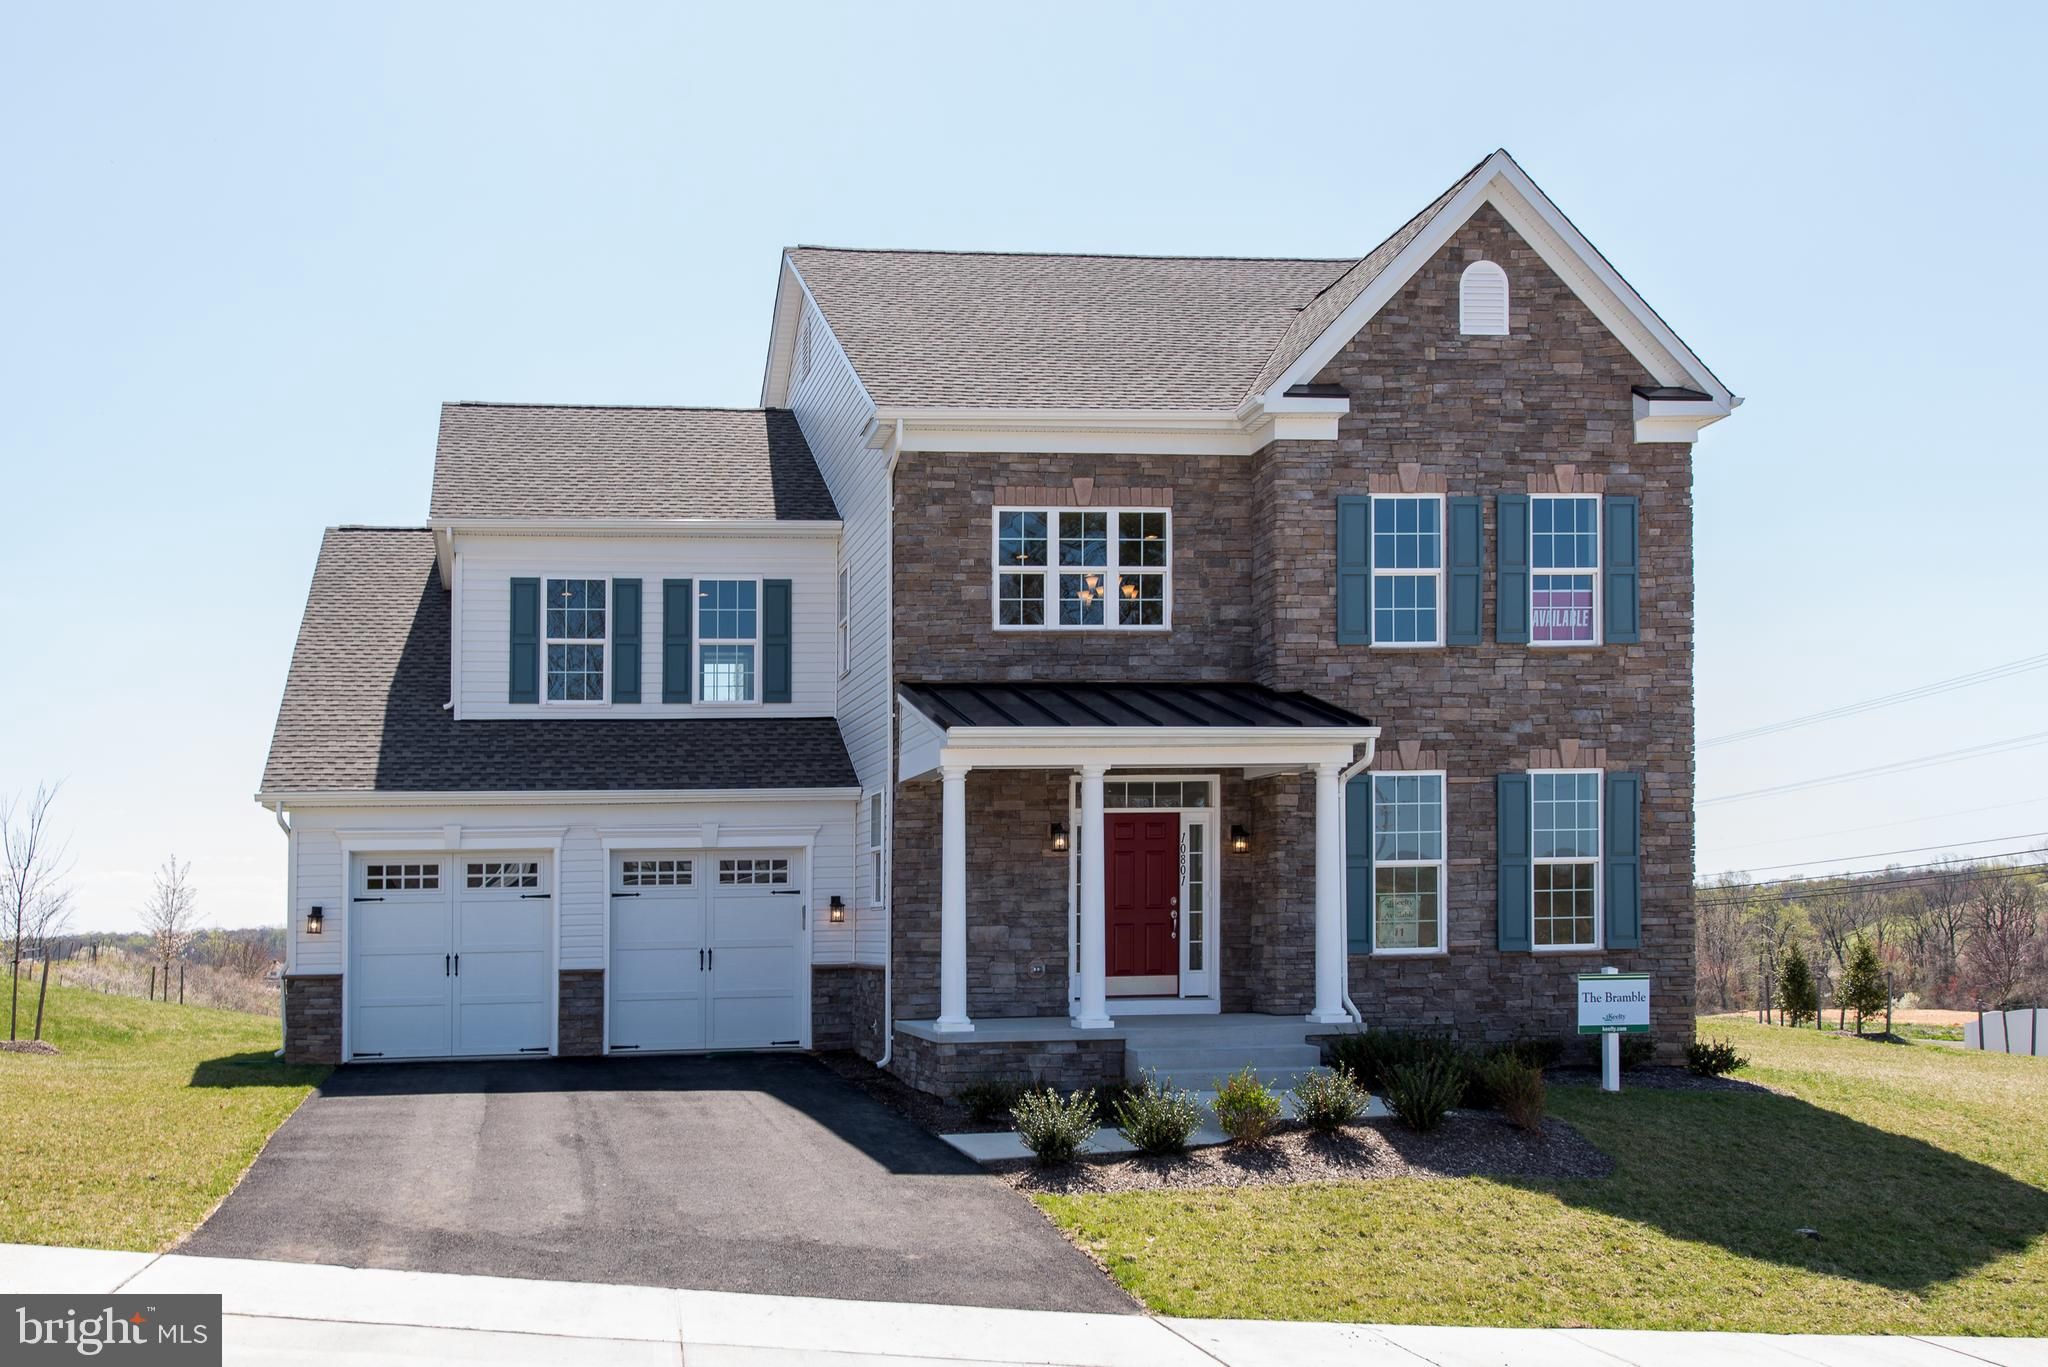 10801 WHITE TRILLIUM ROAD, PERRY HALL, MD 21128